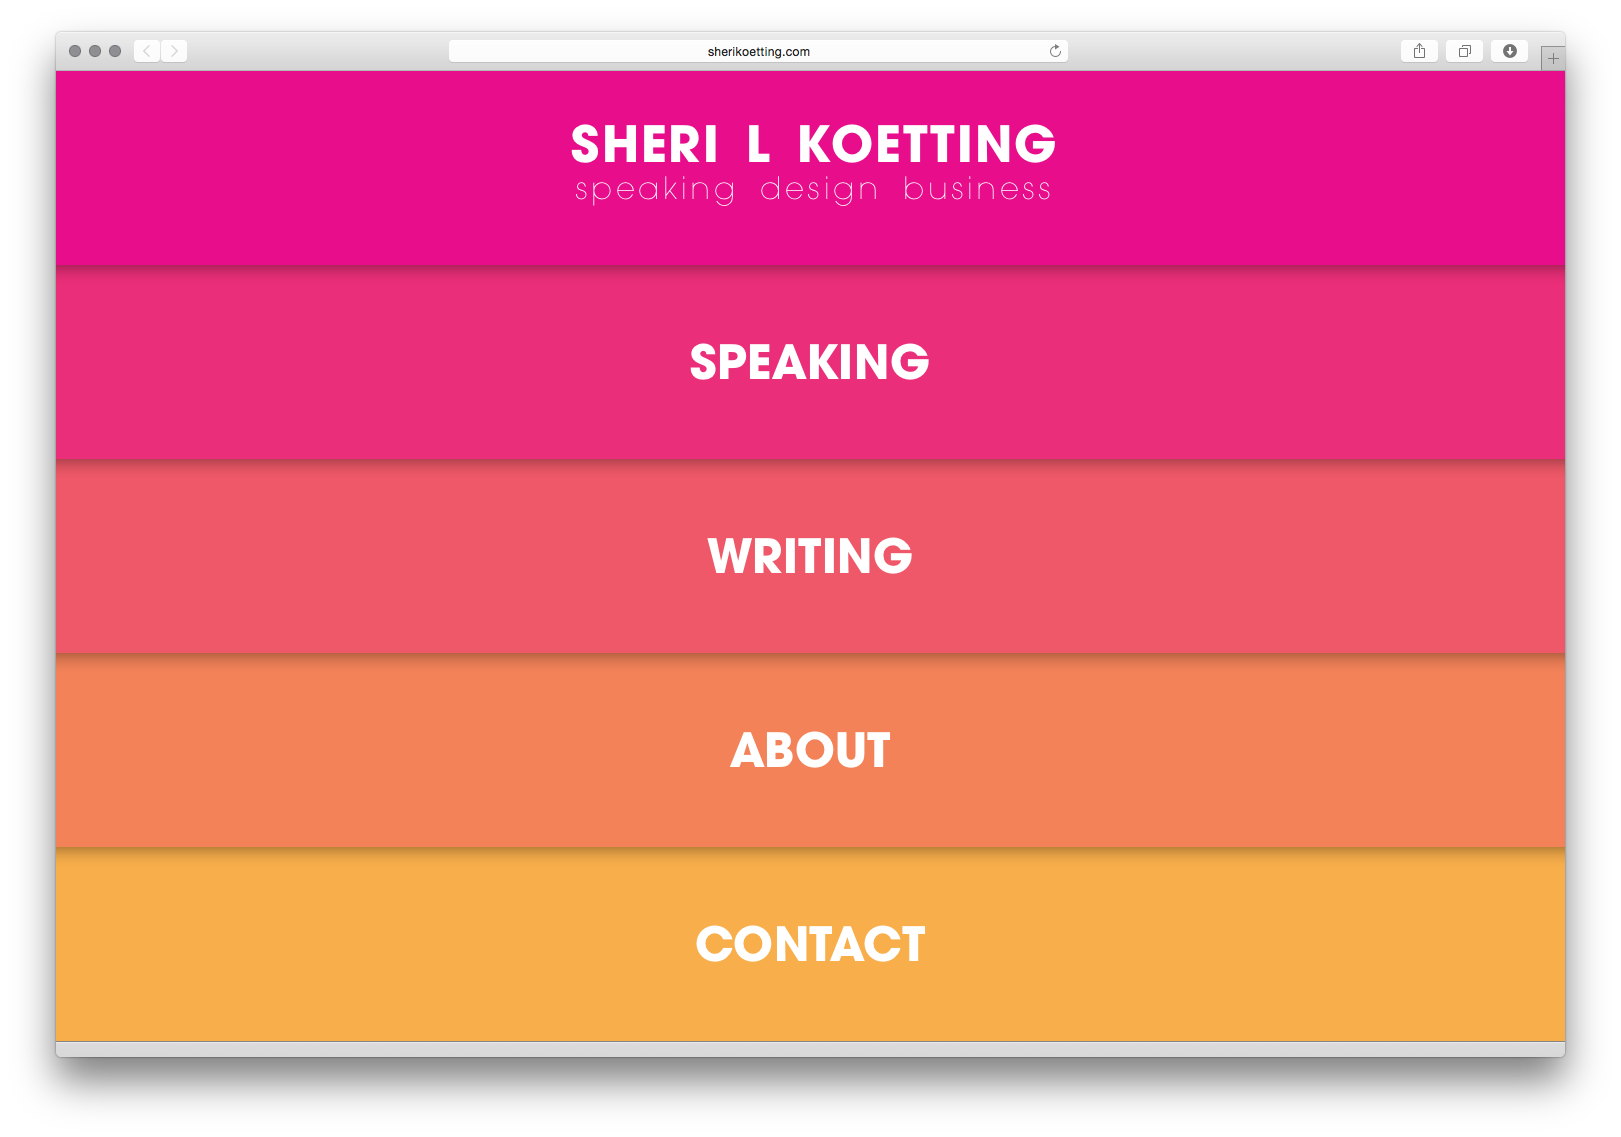 Sheri L Koetting Speaker Website